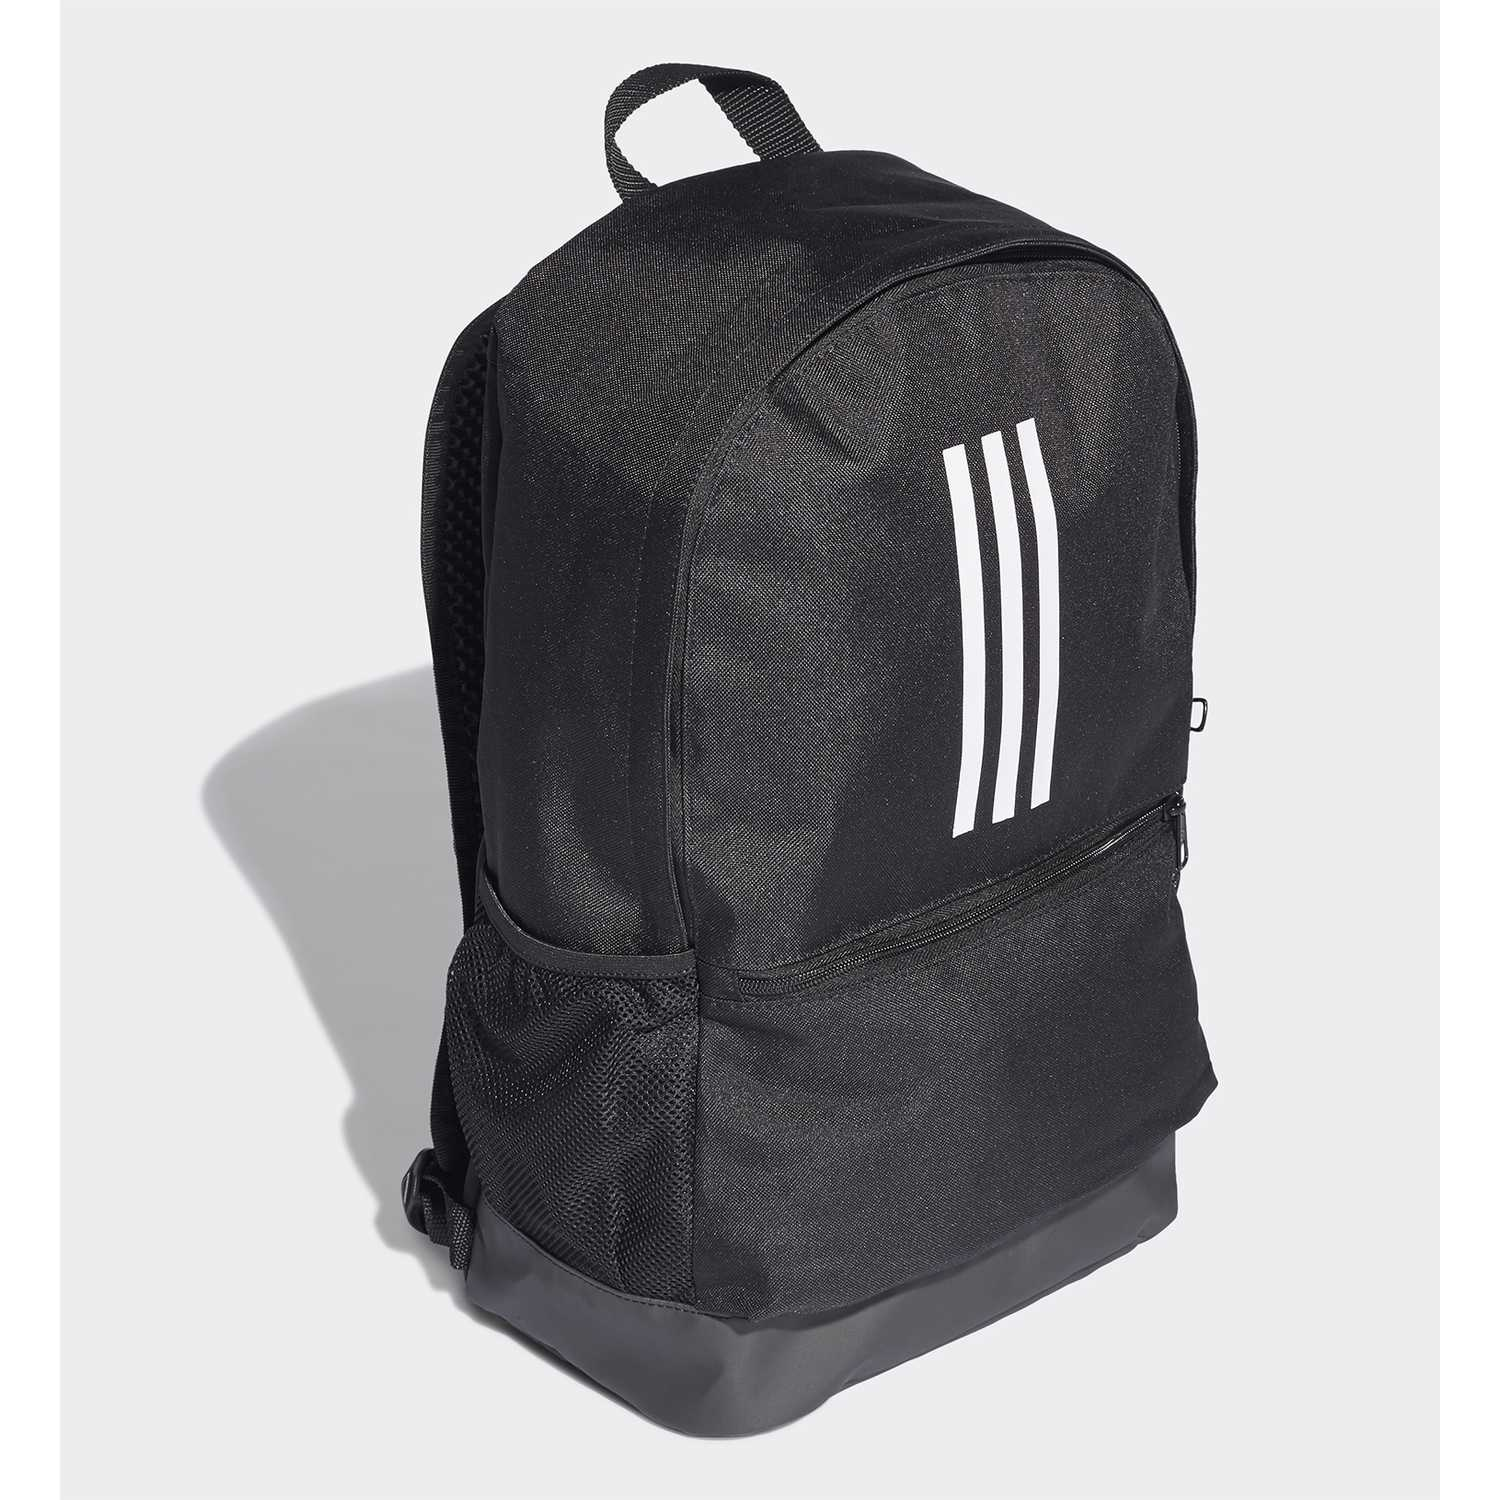 Adidas tiro bp Negro / plomo Mochilas Multipropósitos